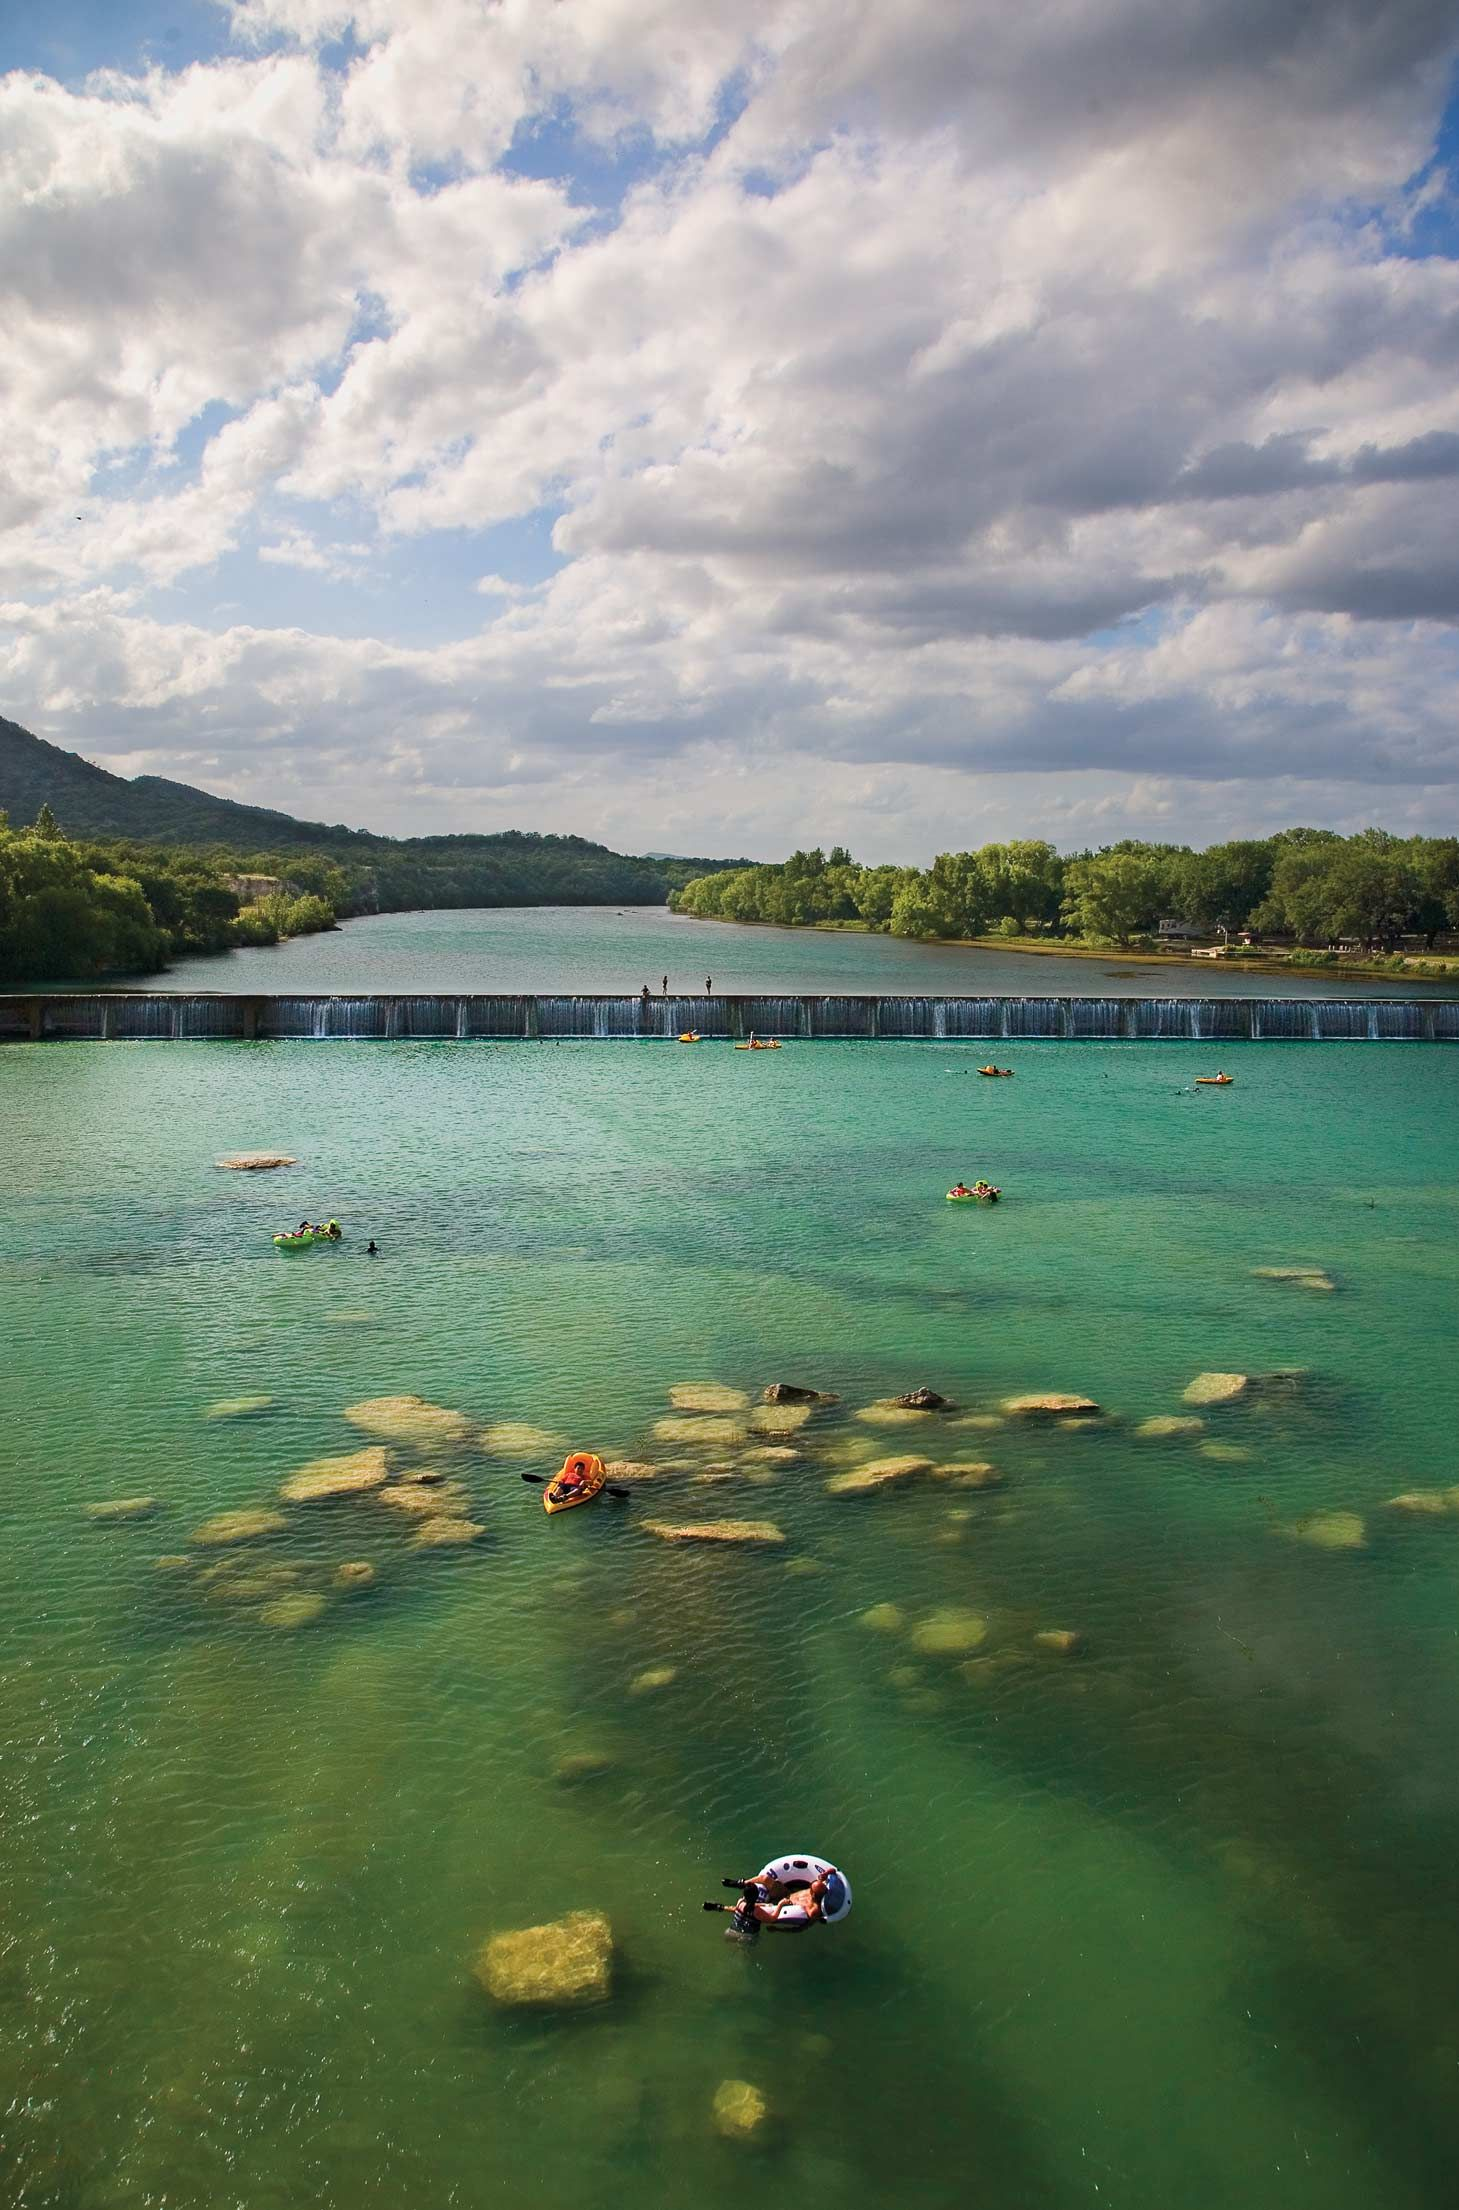 Find Rustic Relaxation On The Nueces River At Camp Wood In The Hill Country Texas Highways Camping Places Walking In Nature Camping Locations